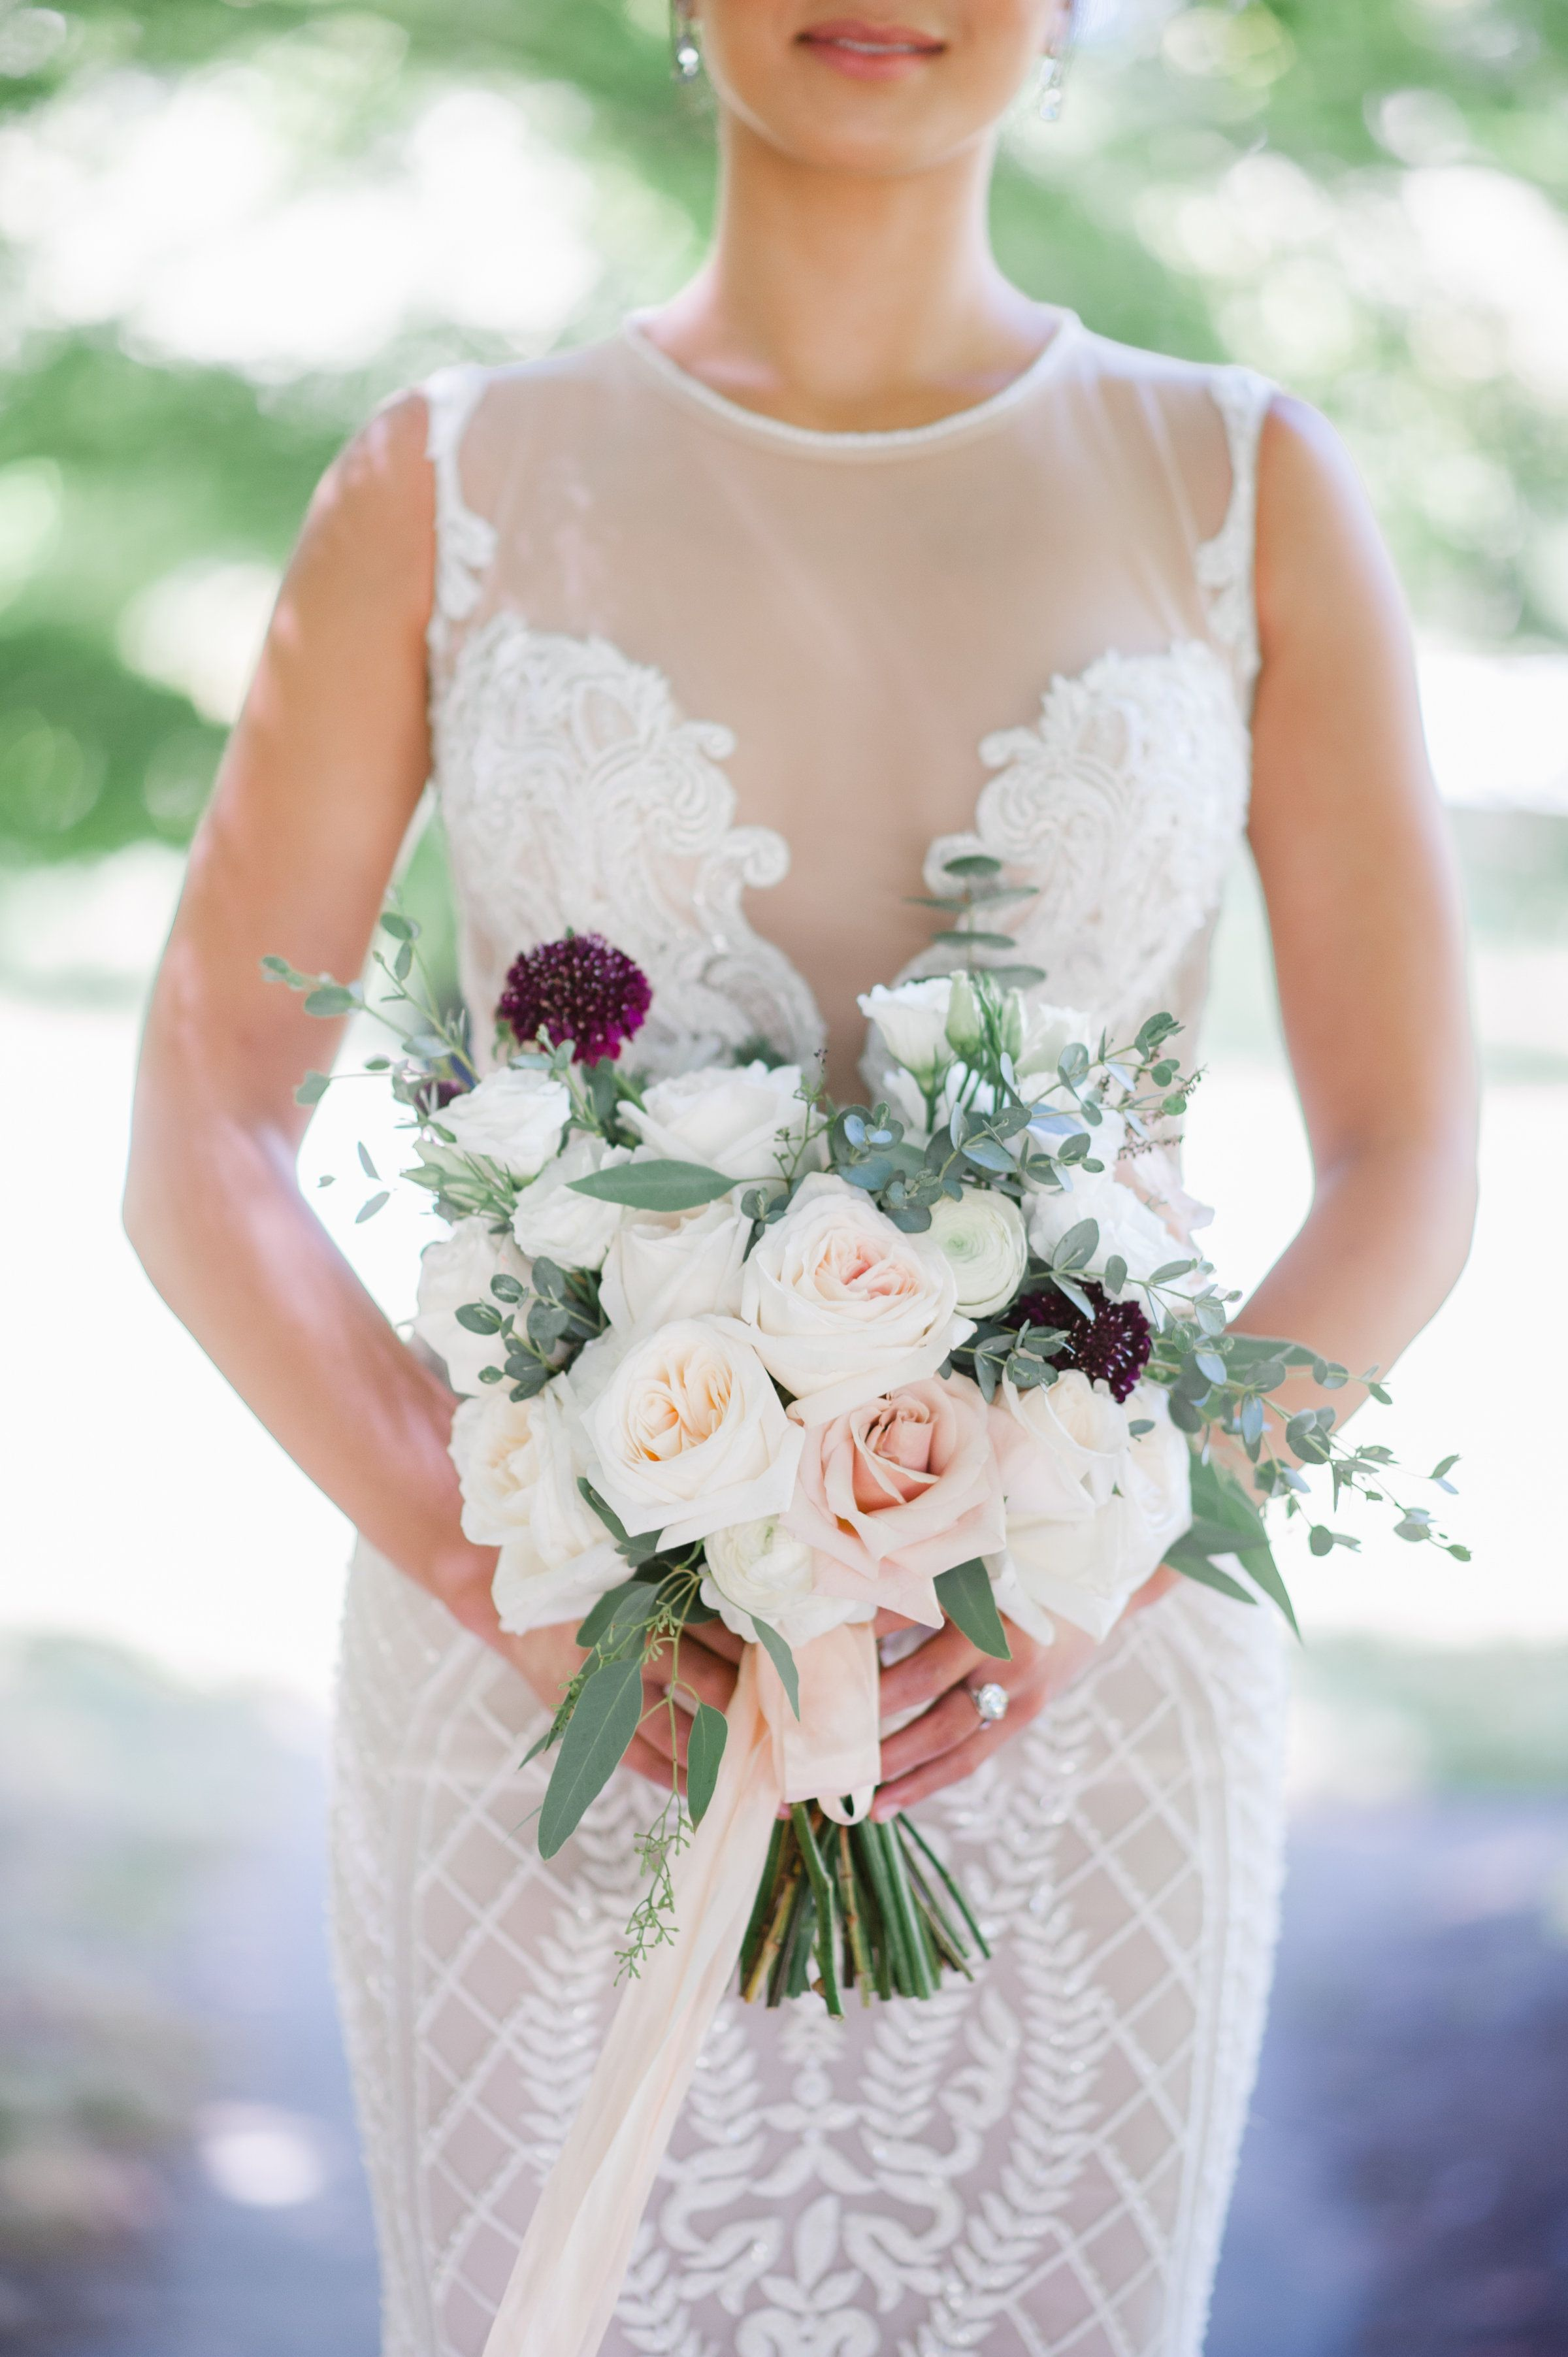 Blush Bridal Bouquet With Pops Of Burgundy Structured With